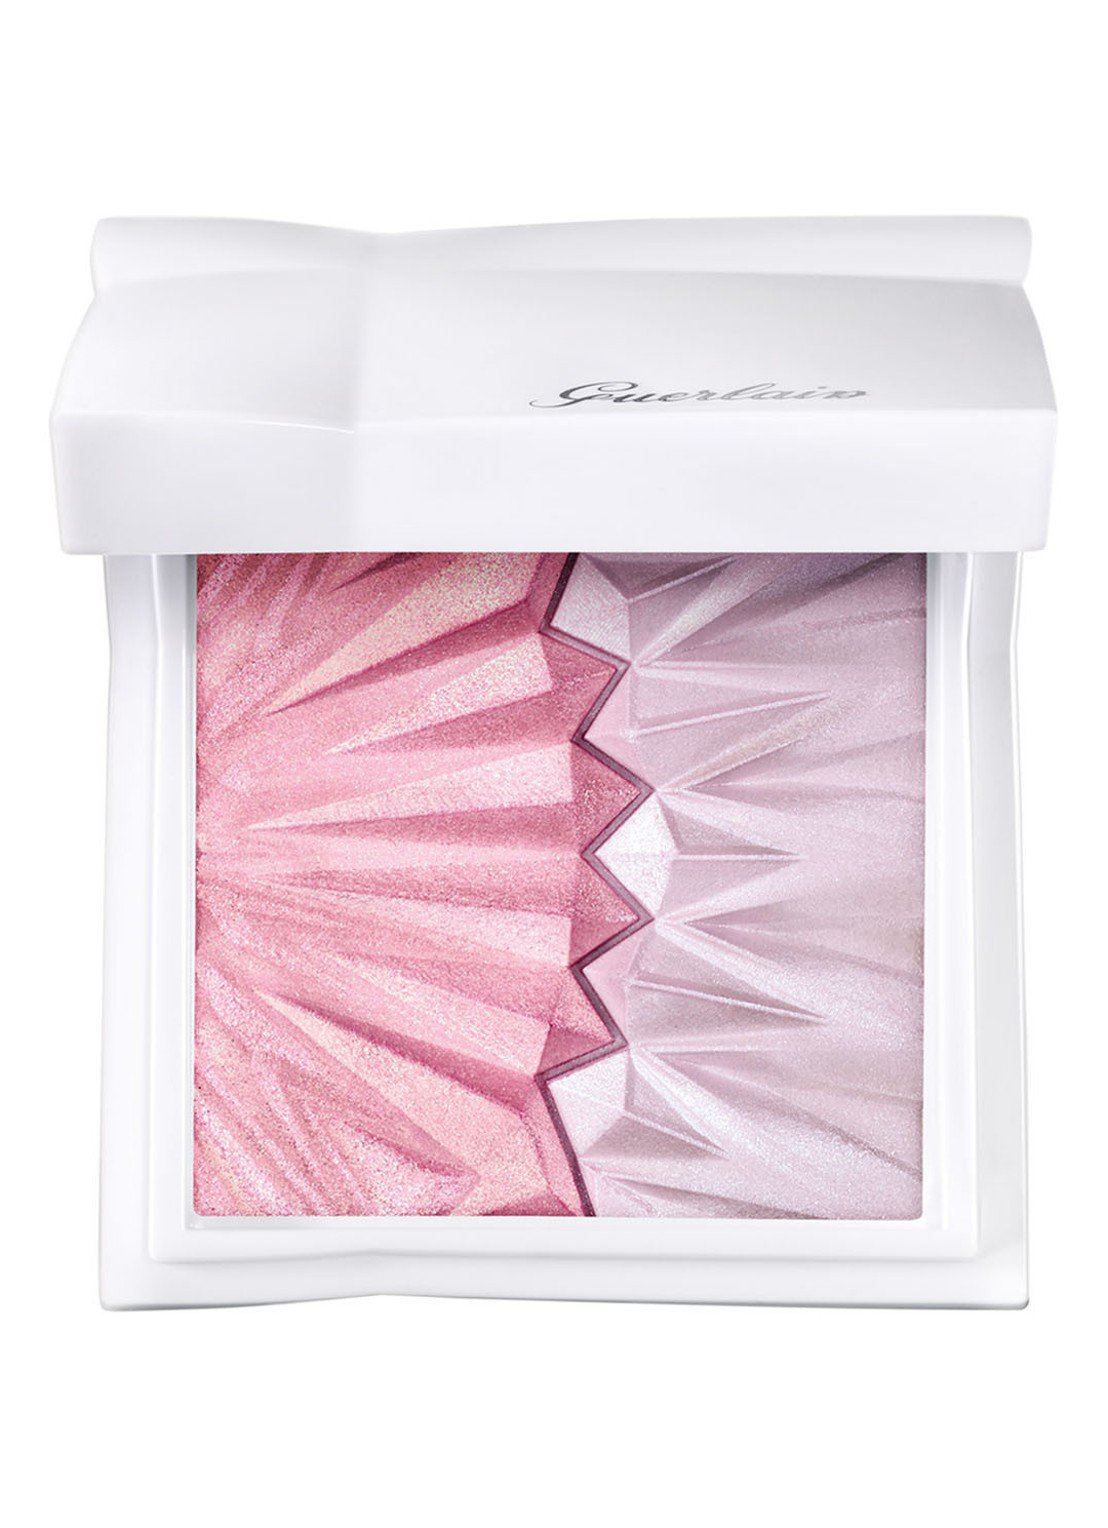 Guerlain Météorites Highlighter Duo - Limited Edition highlighter palette